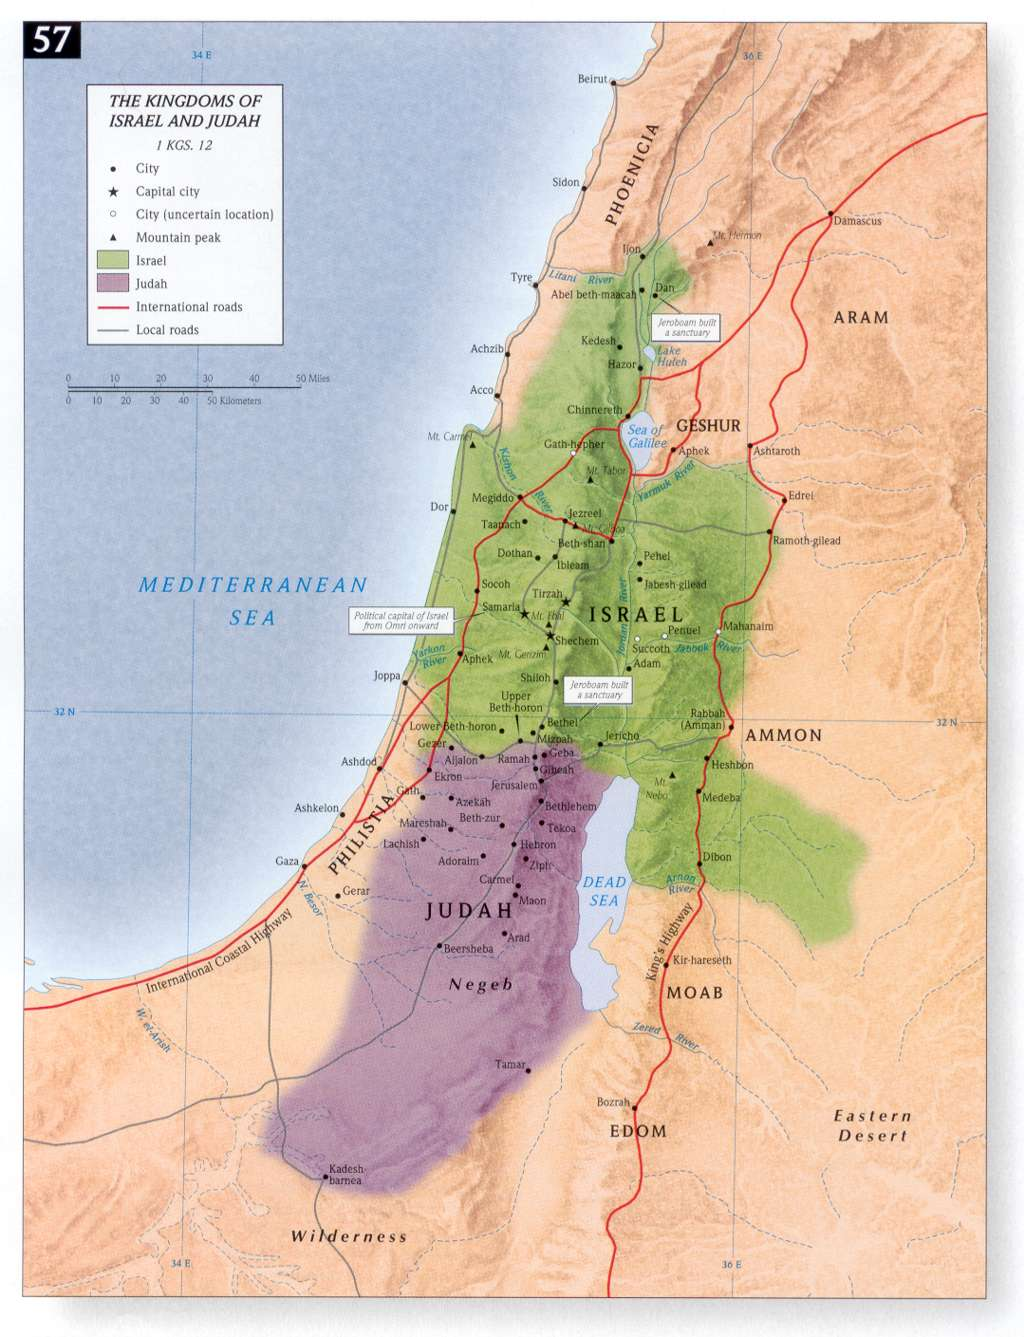 Map Divided Kingdom Israel Judah http://rectorscorner.blogspot.com/2010_04_11_archive.html